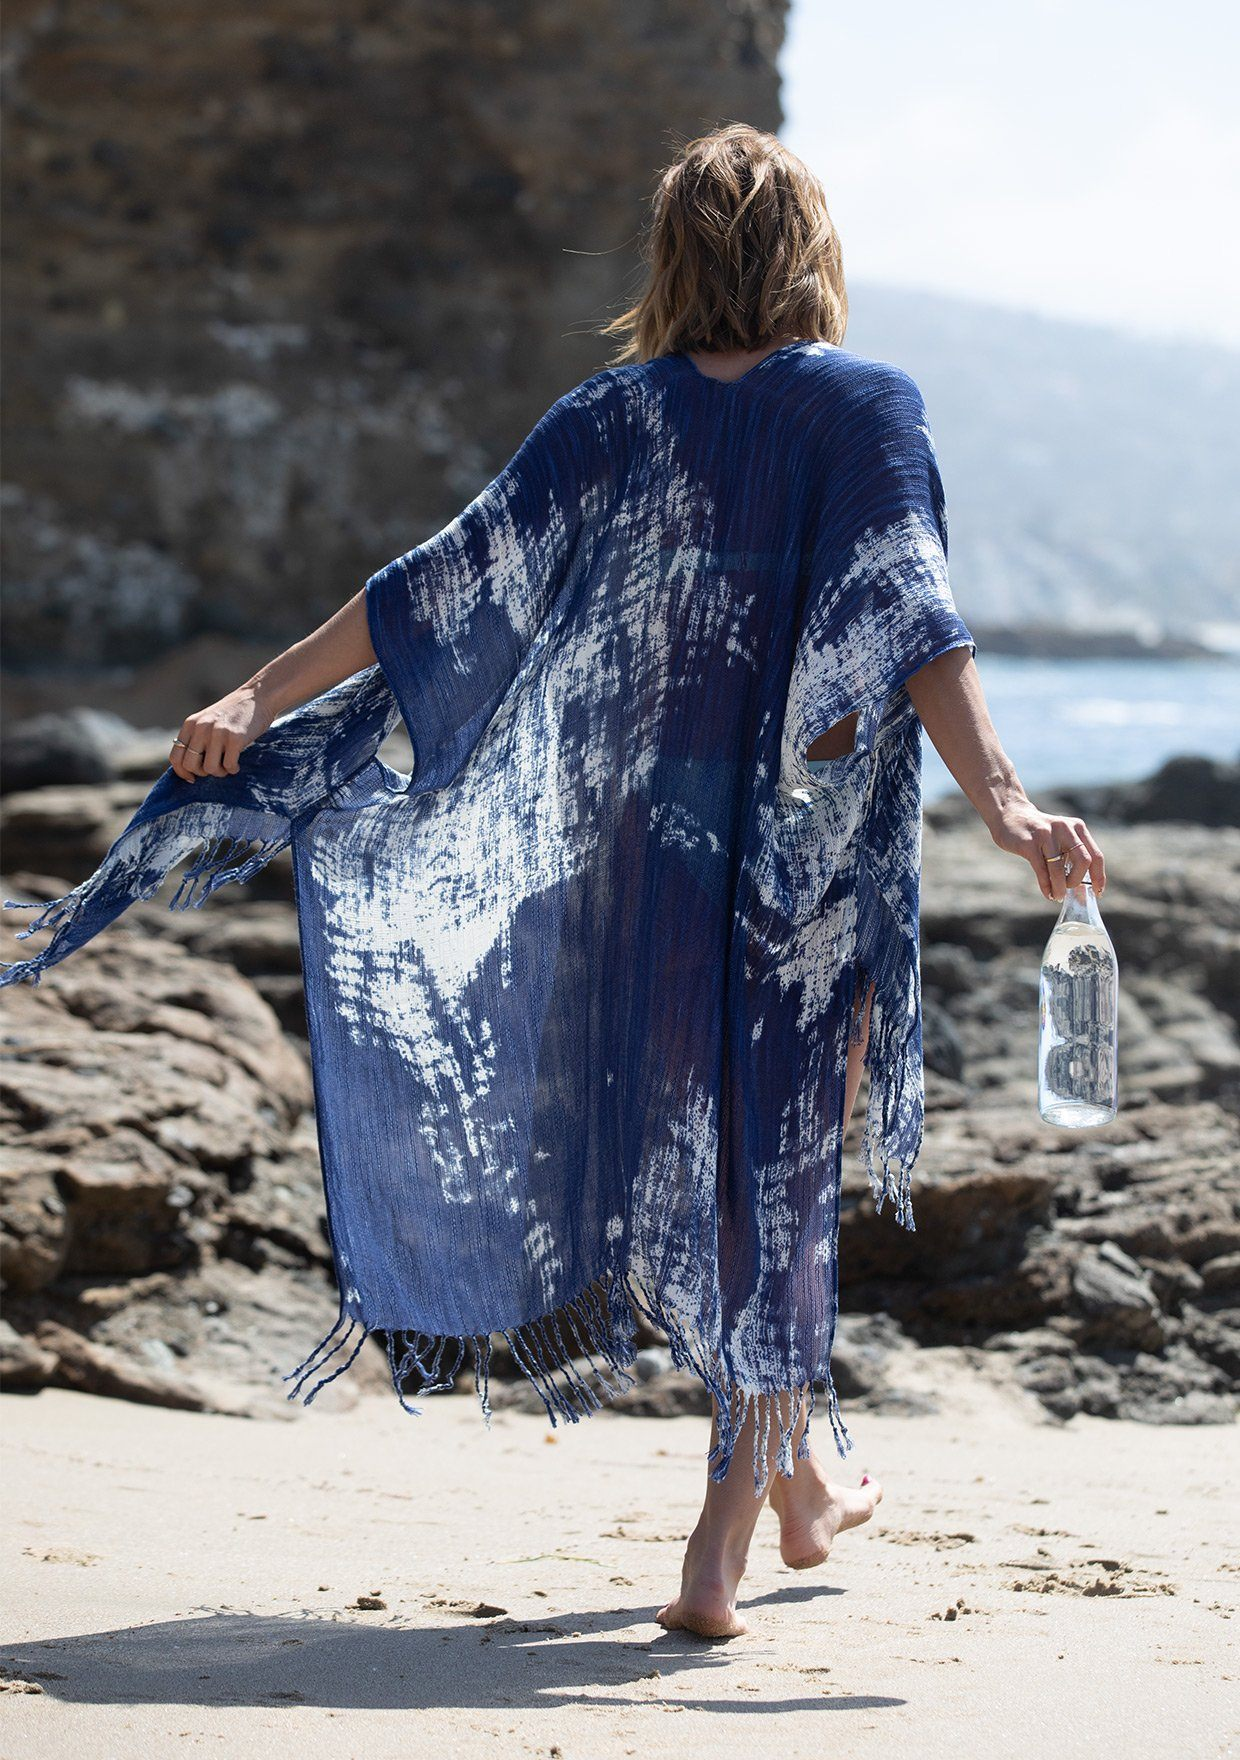 [Color: Navy] A woman standing on the beach wearing a lightweight bohemian mid length tie dye kimono. Featuring a fringed hemline, an open front, and half length kimono sleeves.